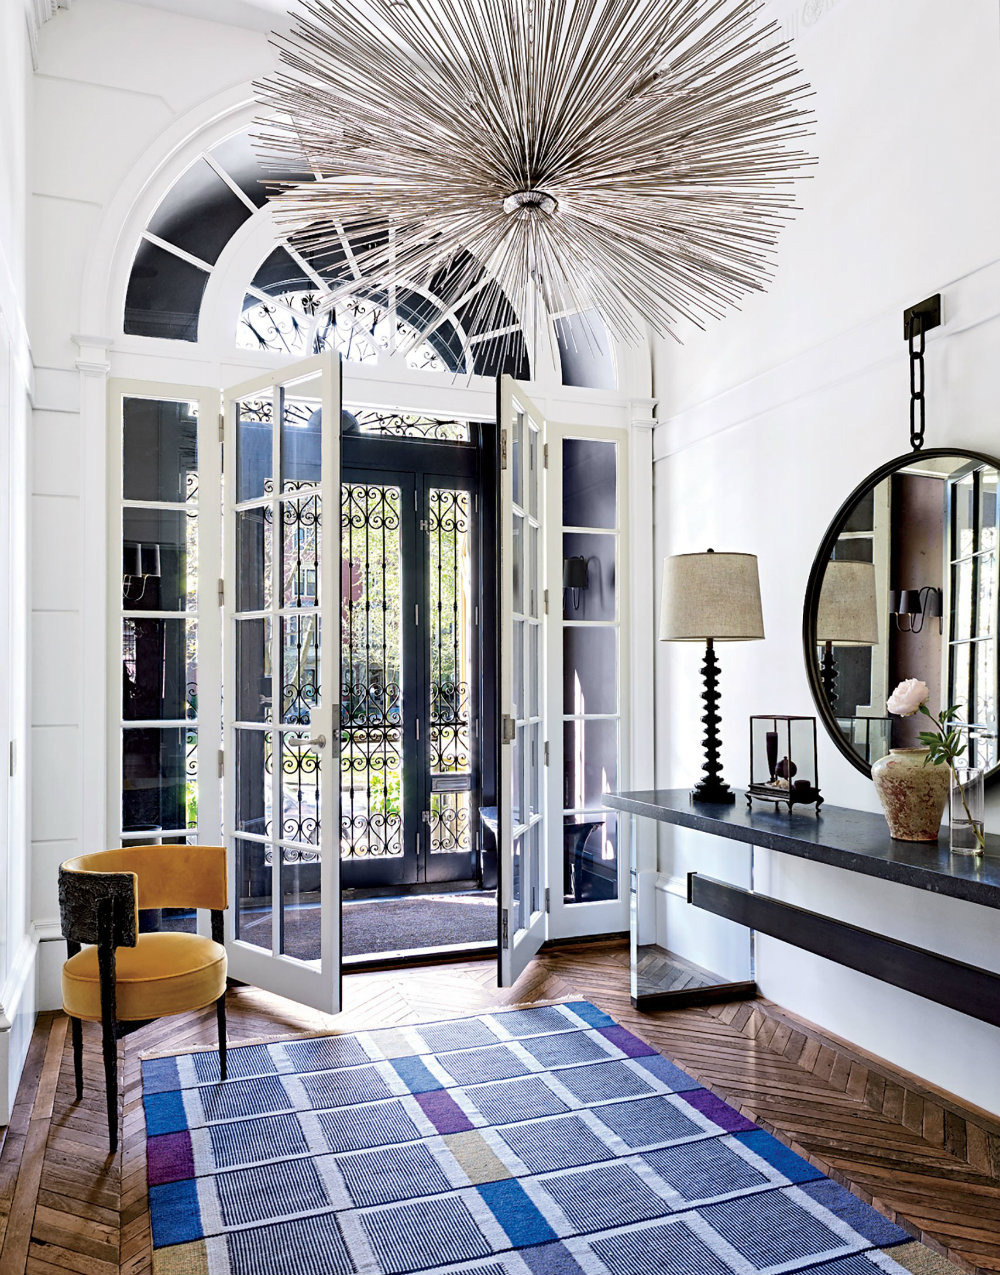 7 Elegant Entryways for the Home of Your Dreams 04 Elegant Entryways 7 Elegant Entryways for the Home of Your Dreams 7 Elegant Entryways for the Home of Your Dreams 04